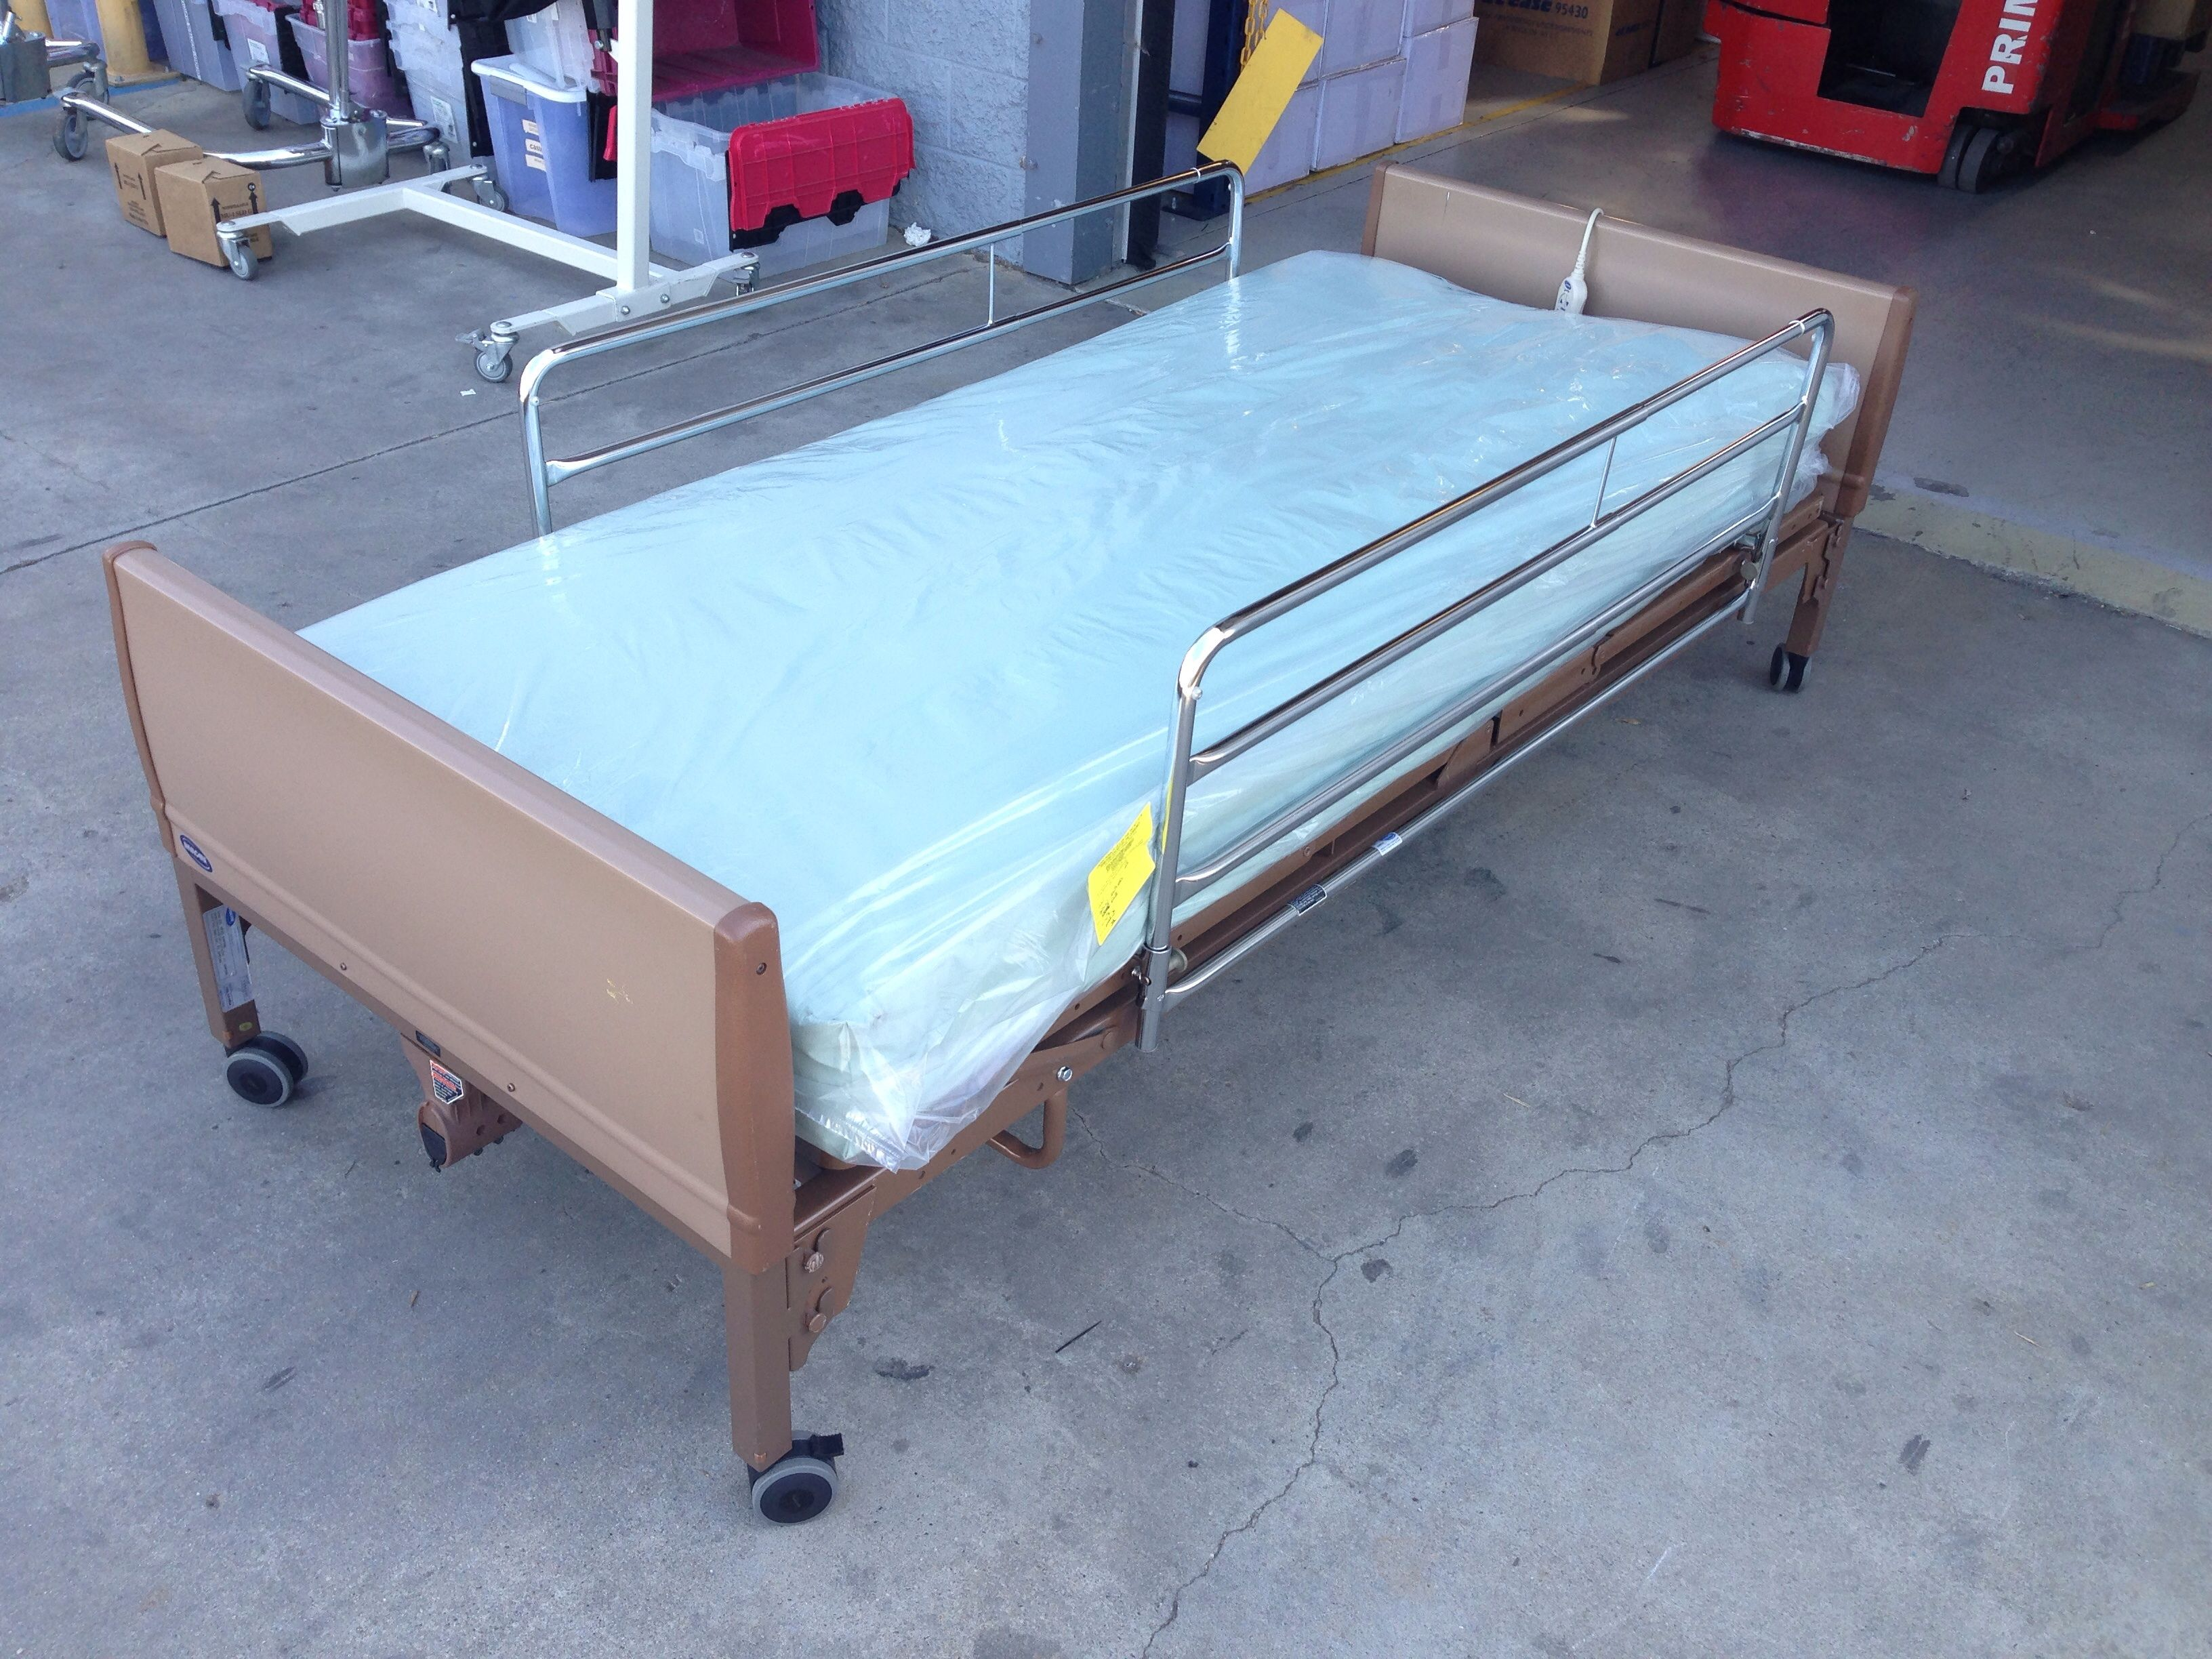 Invacare 5410IVC Hospital bed, Bed rails, Bed